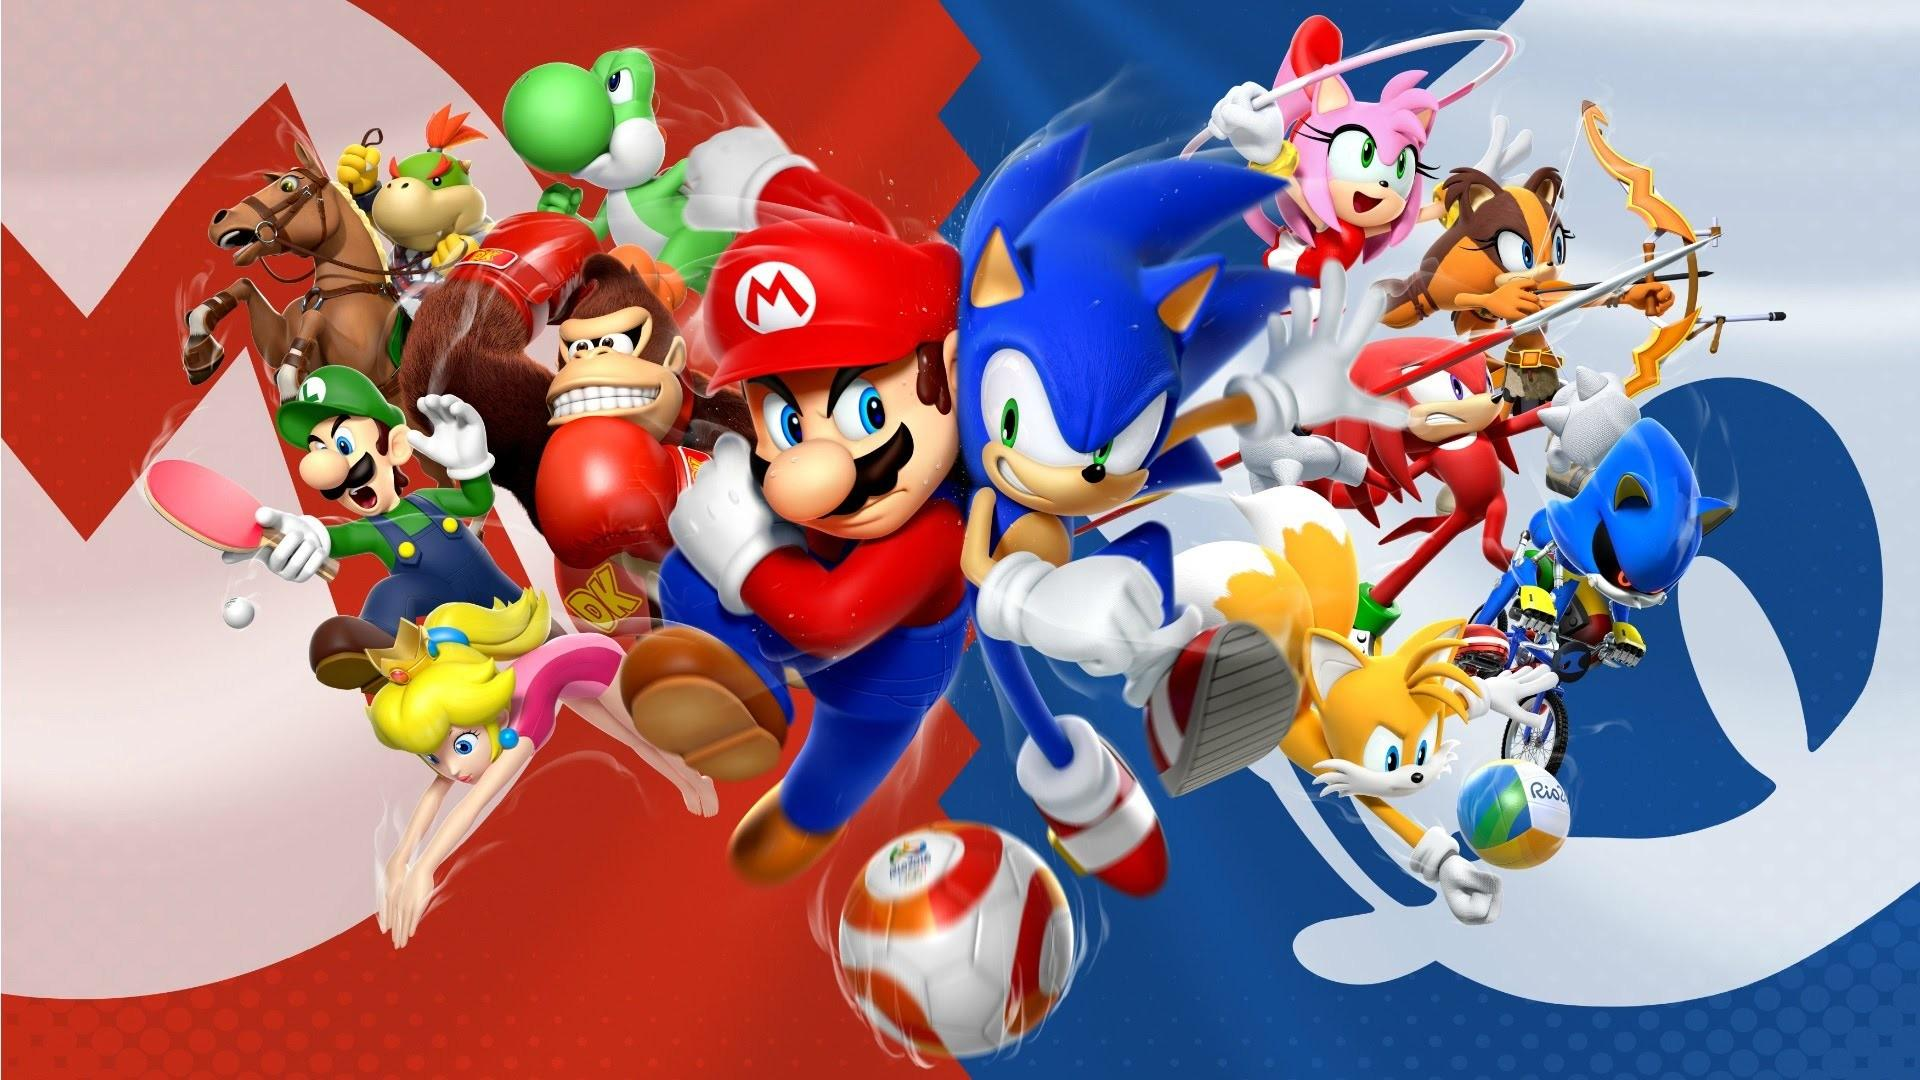 Sonic Vs Mario Wallpapers Wallpaper Cave